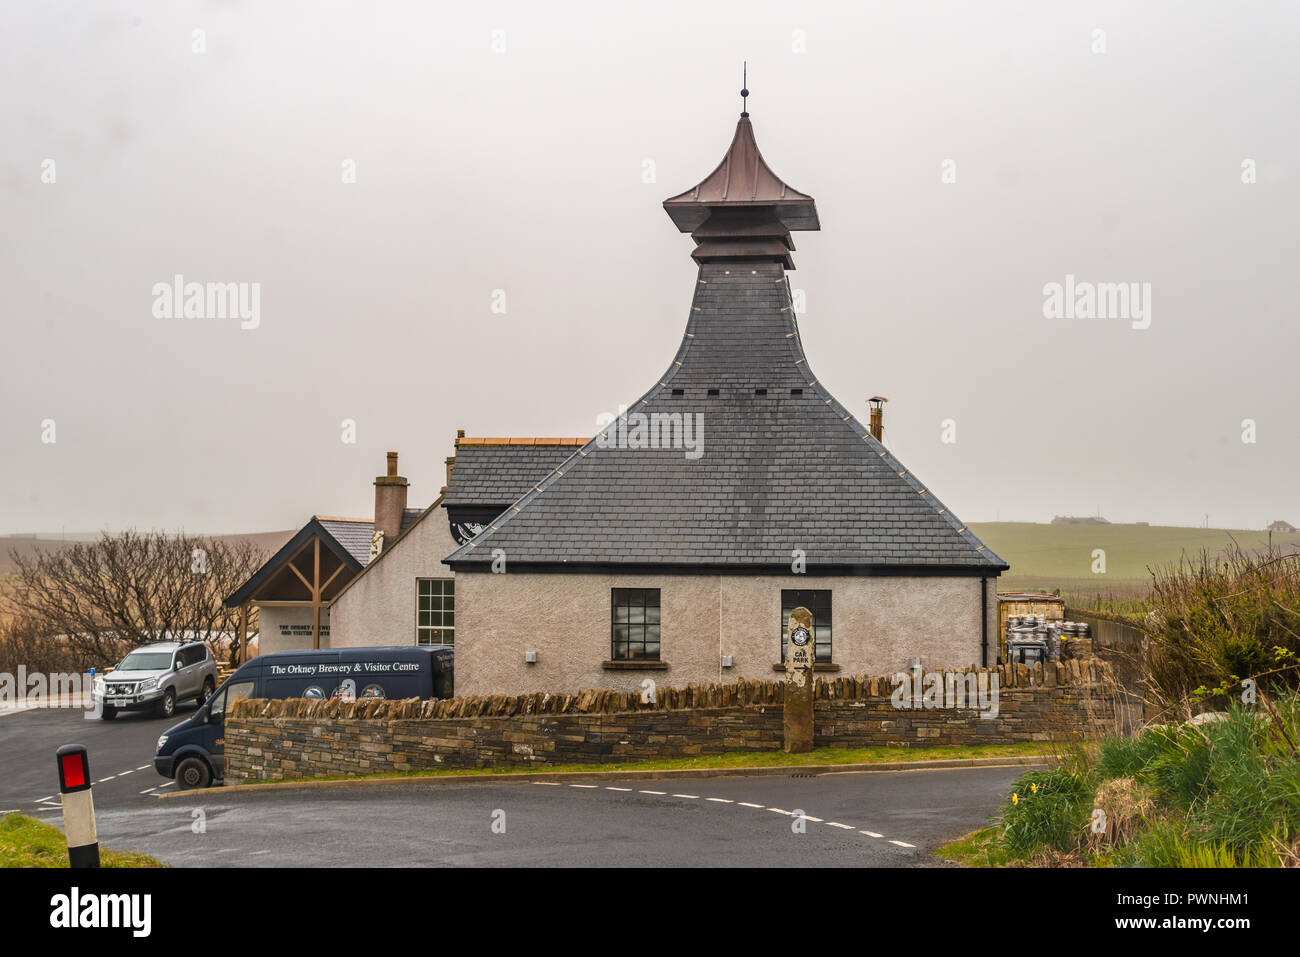 Orkney Brewery near Stromness, Quoyloo, Mainland, Orkney, Scotland, United Kingdom - Stock Image